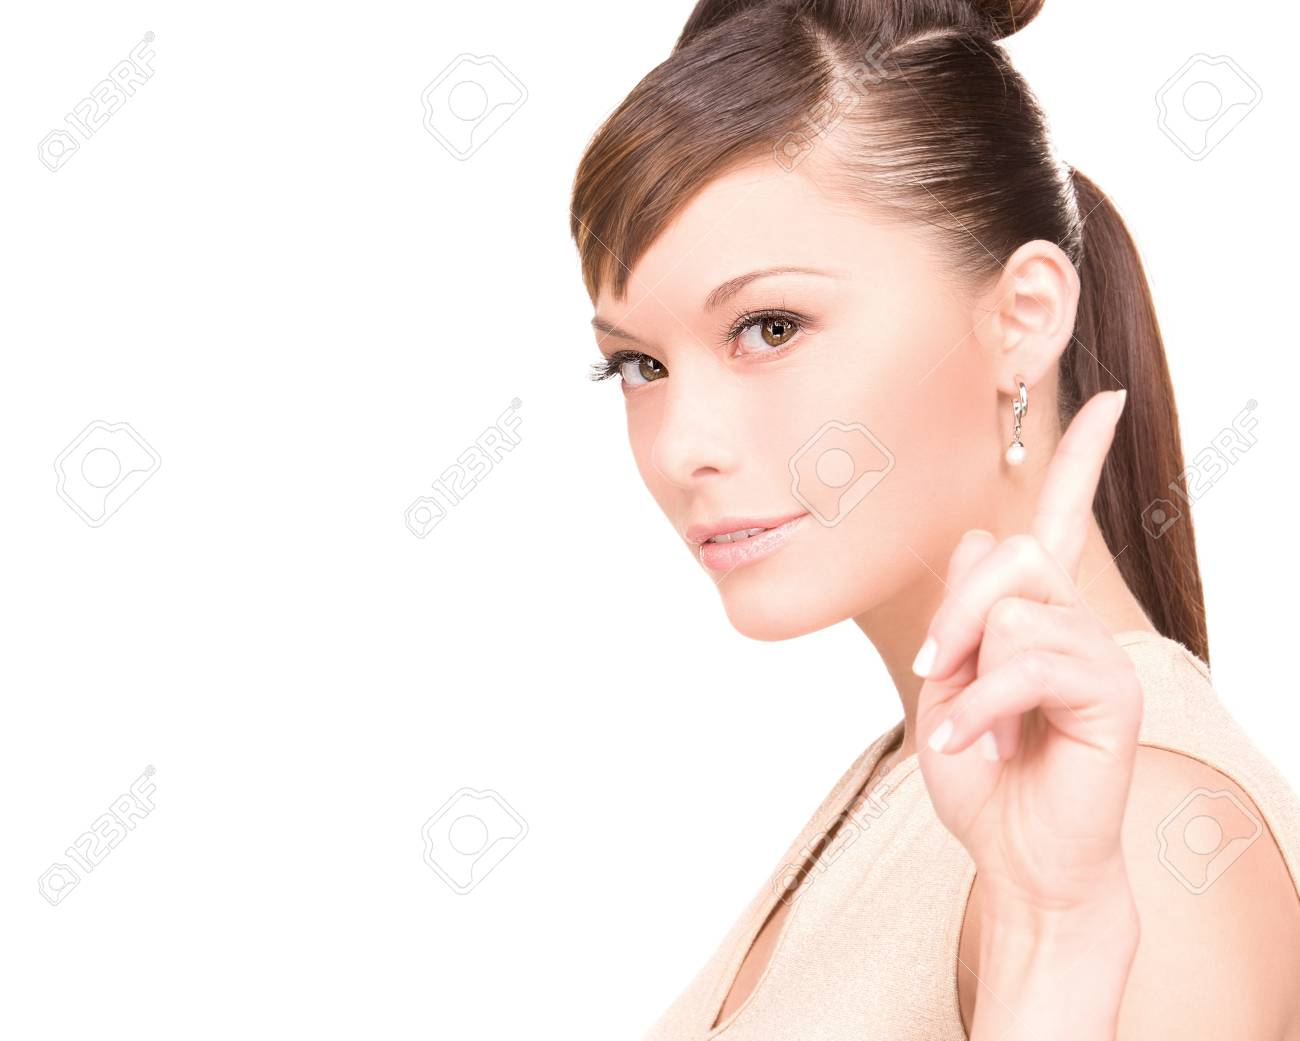 picture of attractive young woman with her finger up Stock Photo - 6941609